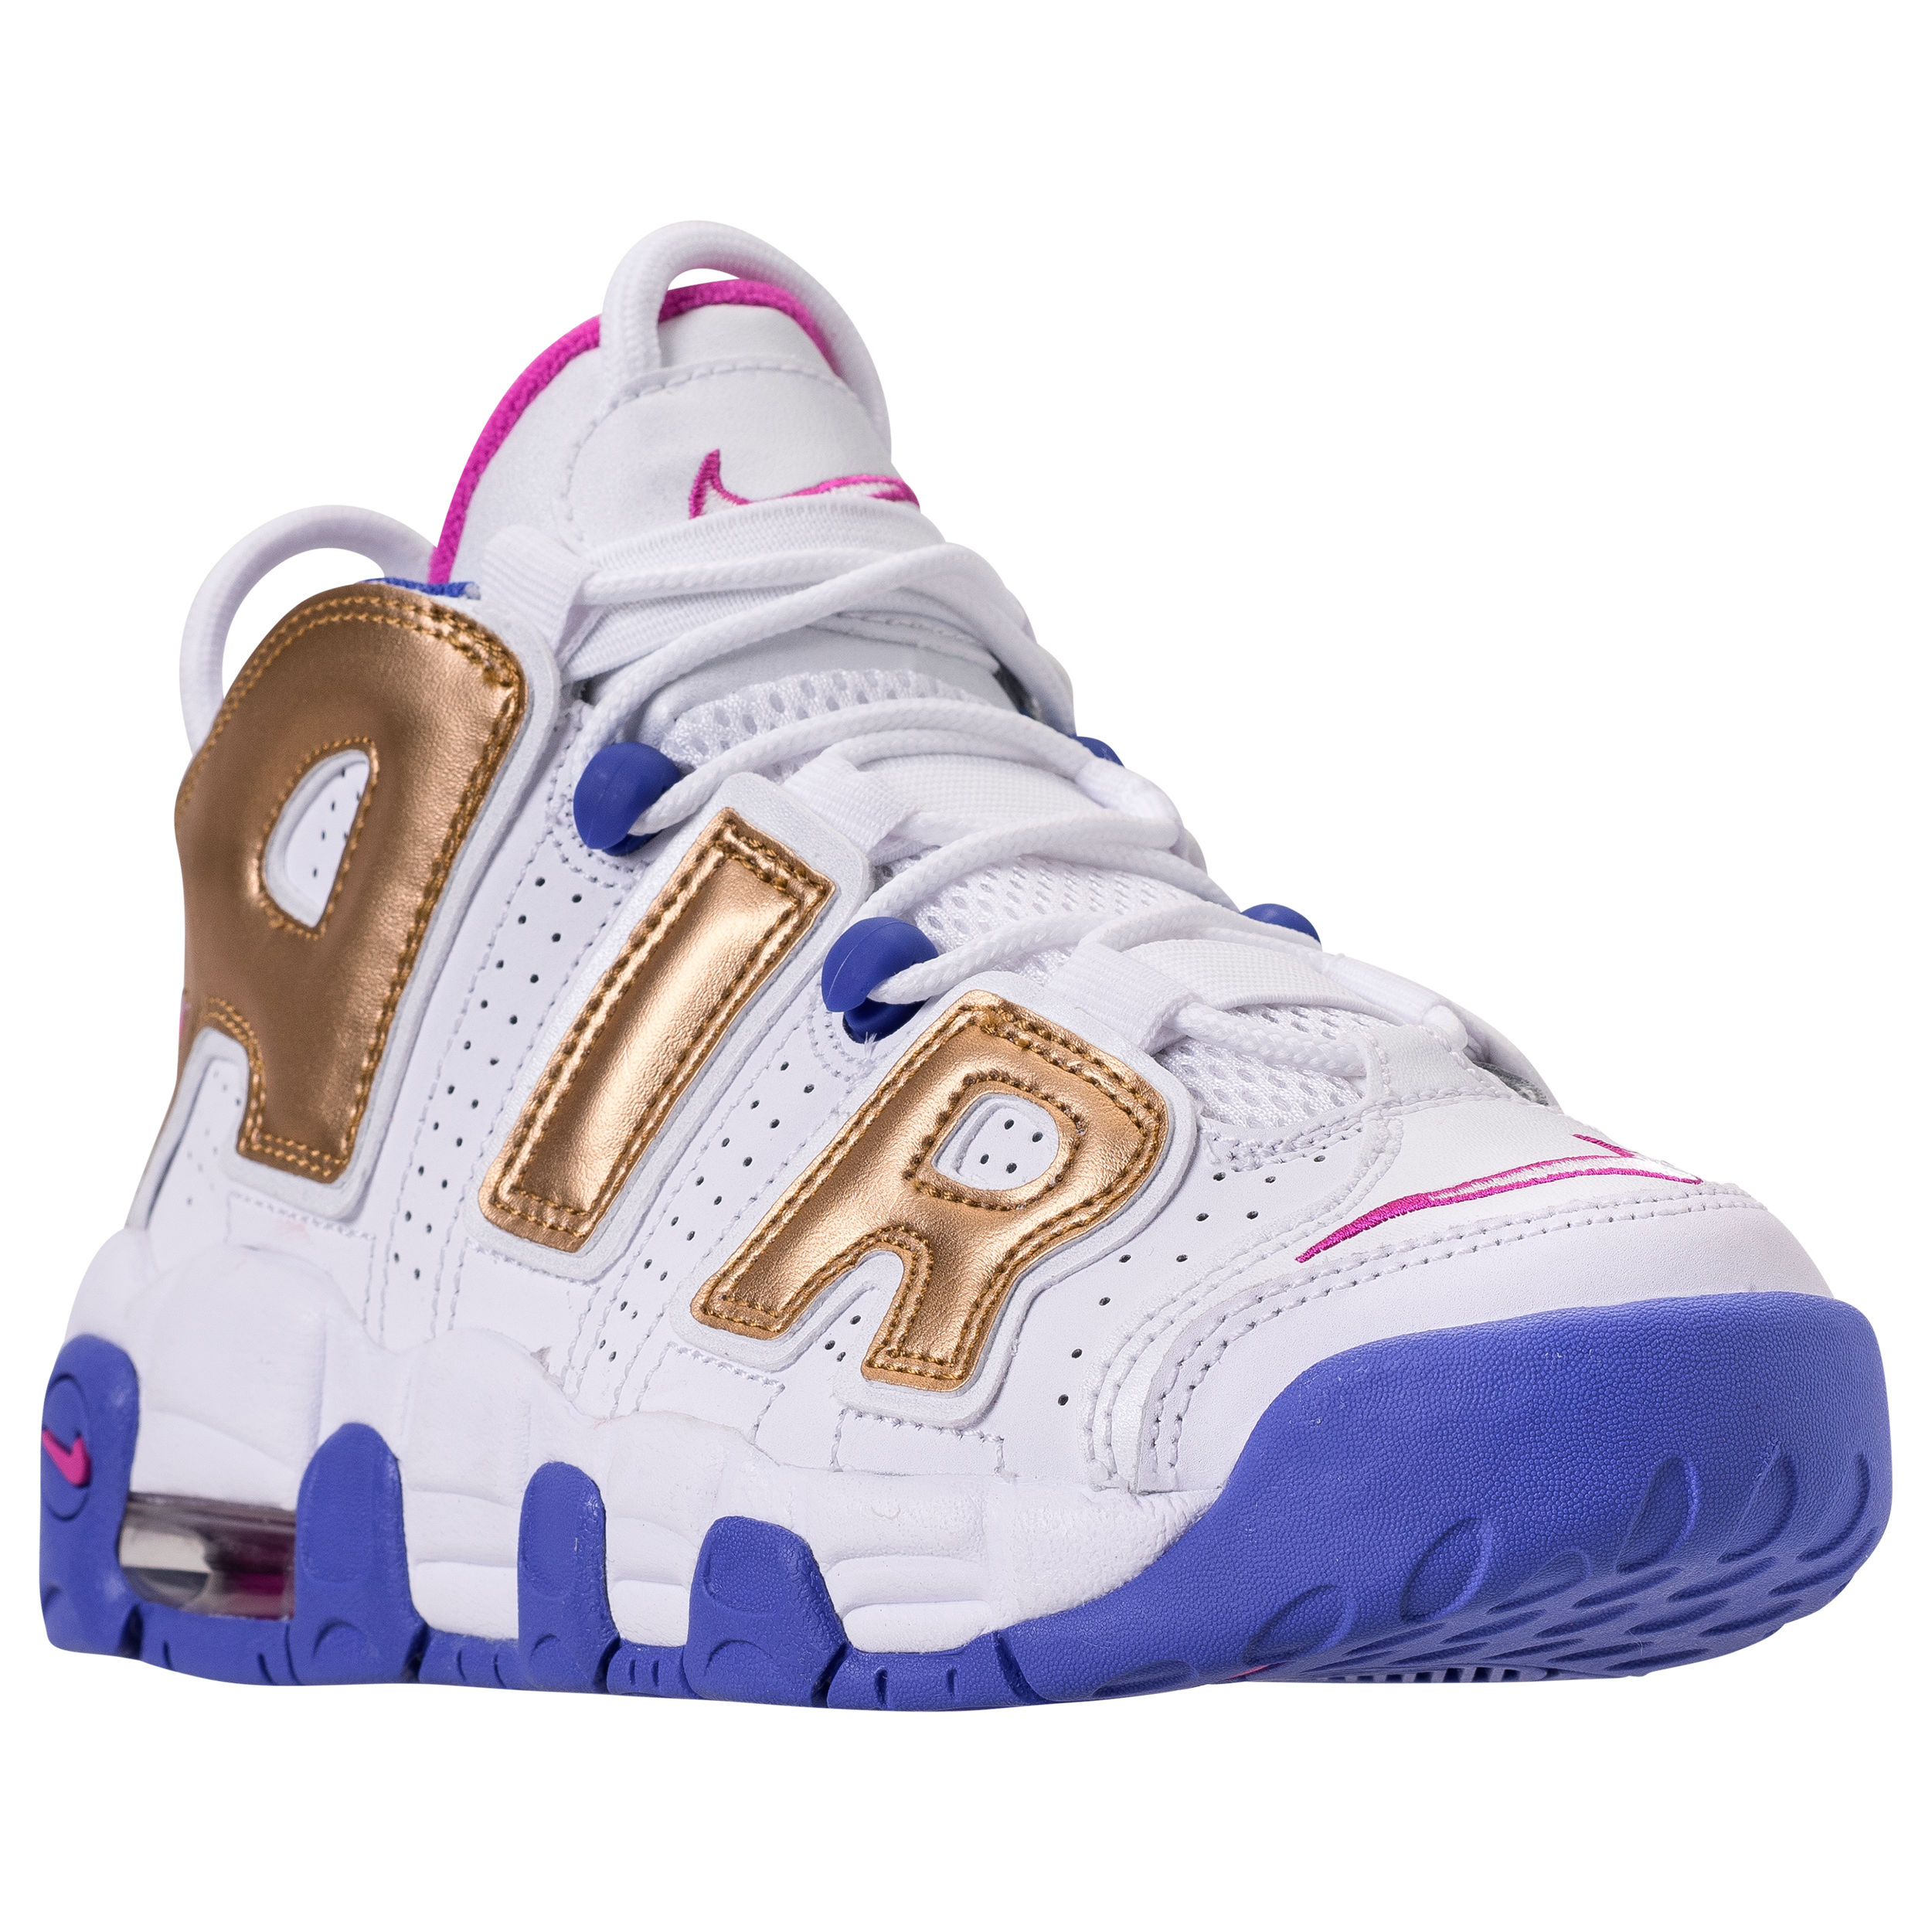 NIKE AIR MORE UPTEMPO GS WHITE:FUSCIA BLAST:METALLIC GOLD:RACER BLUE 1